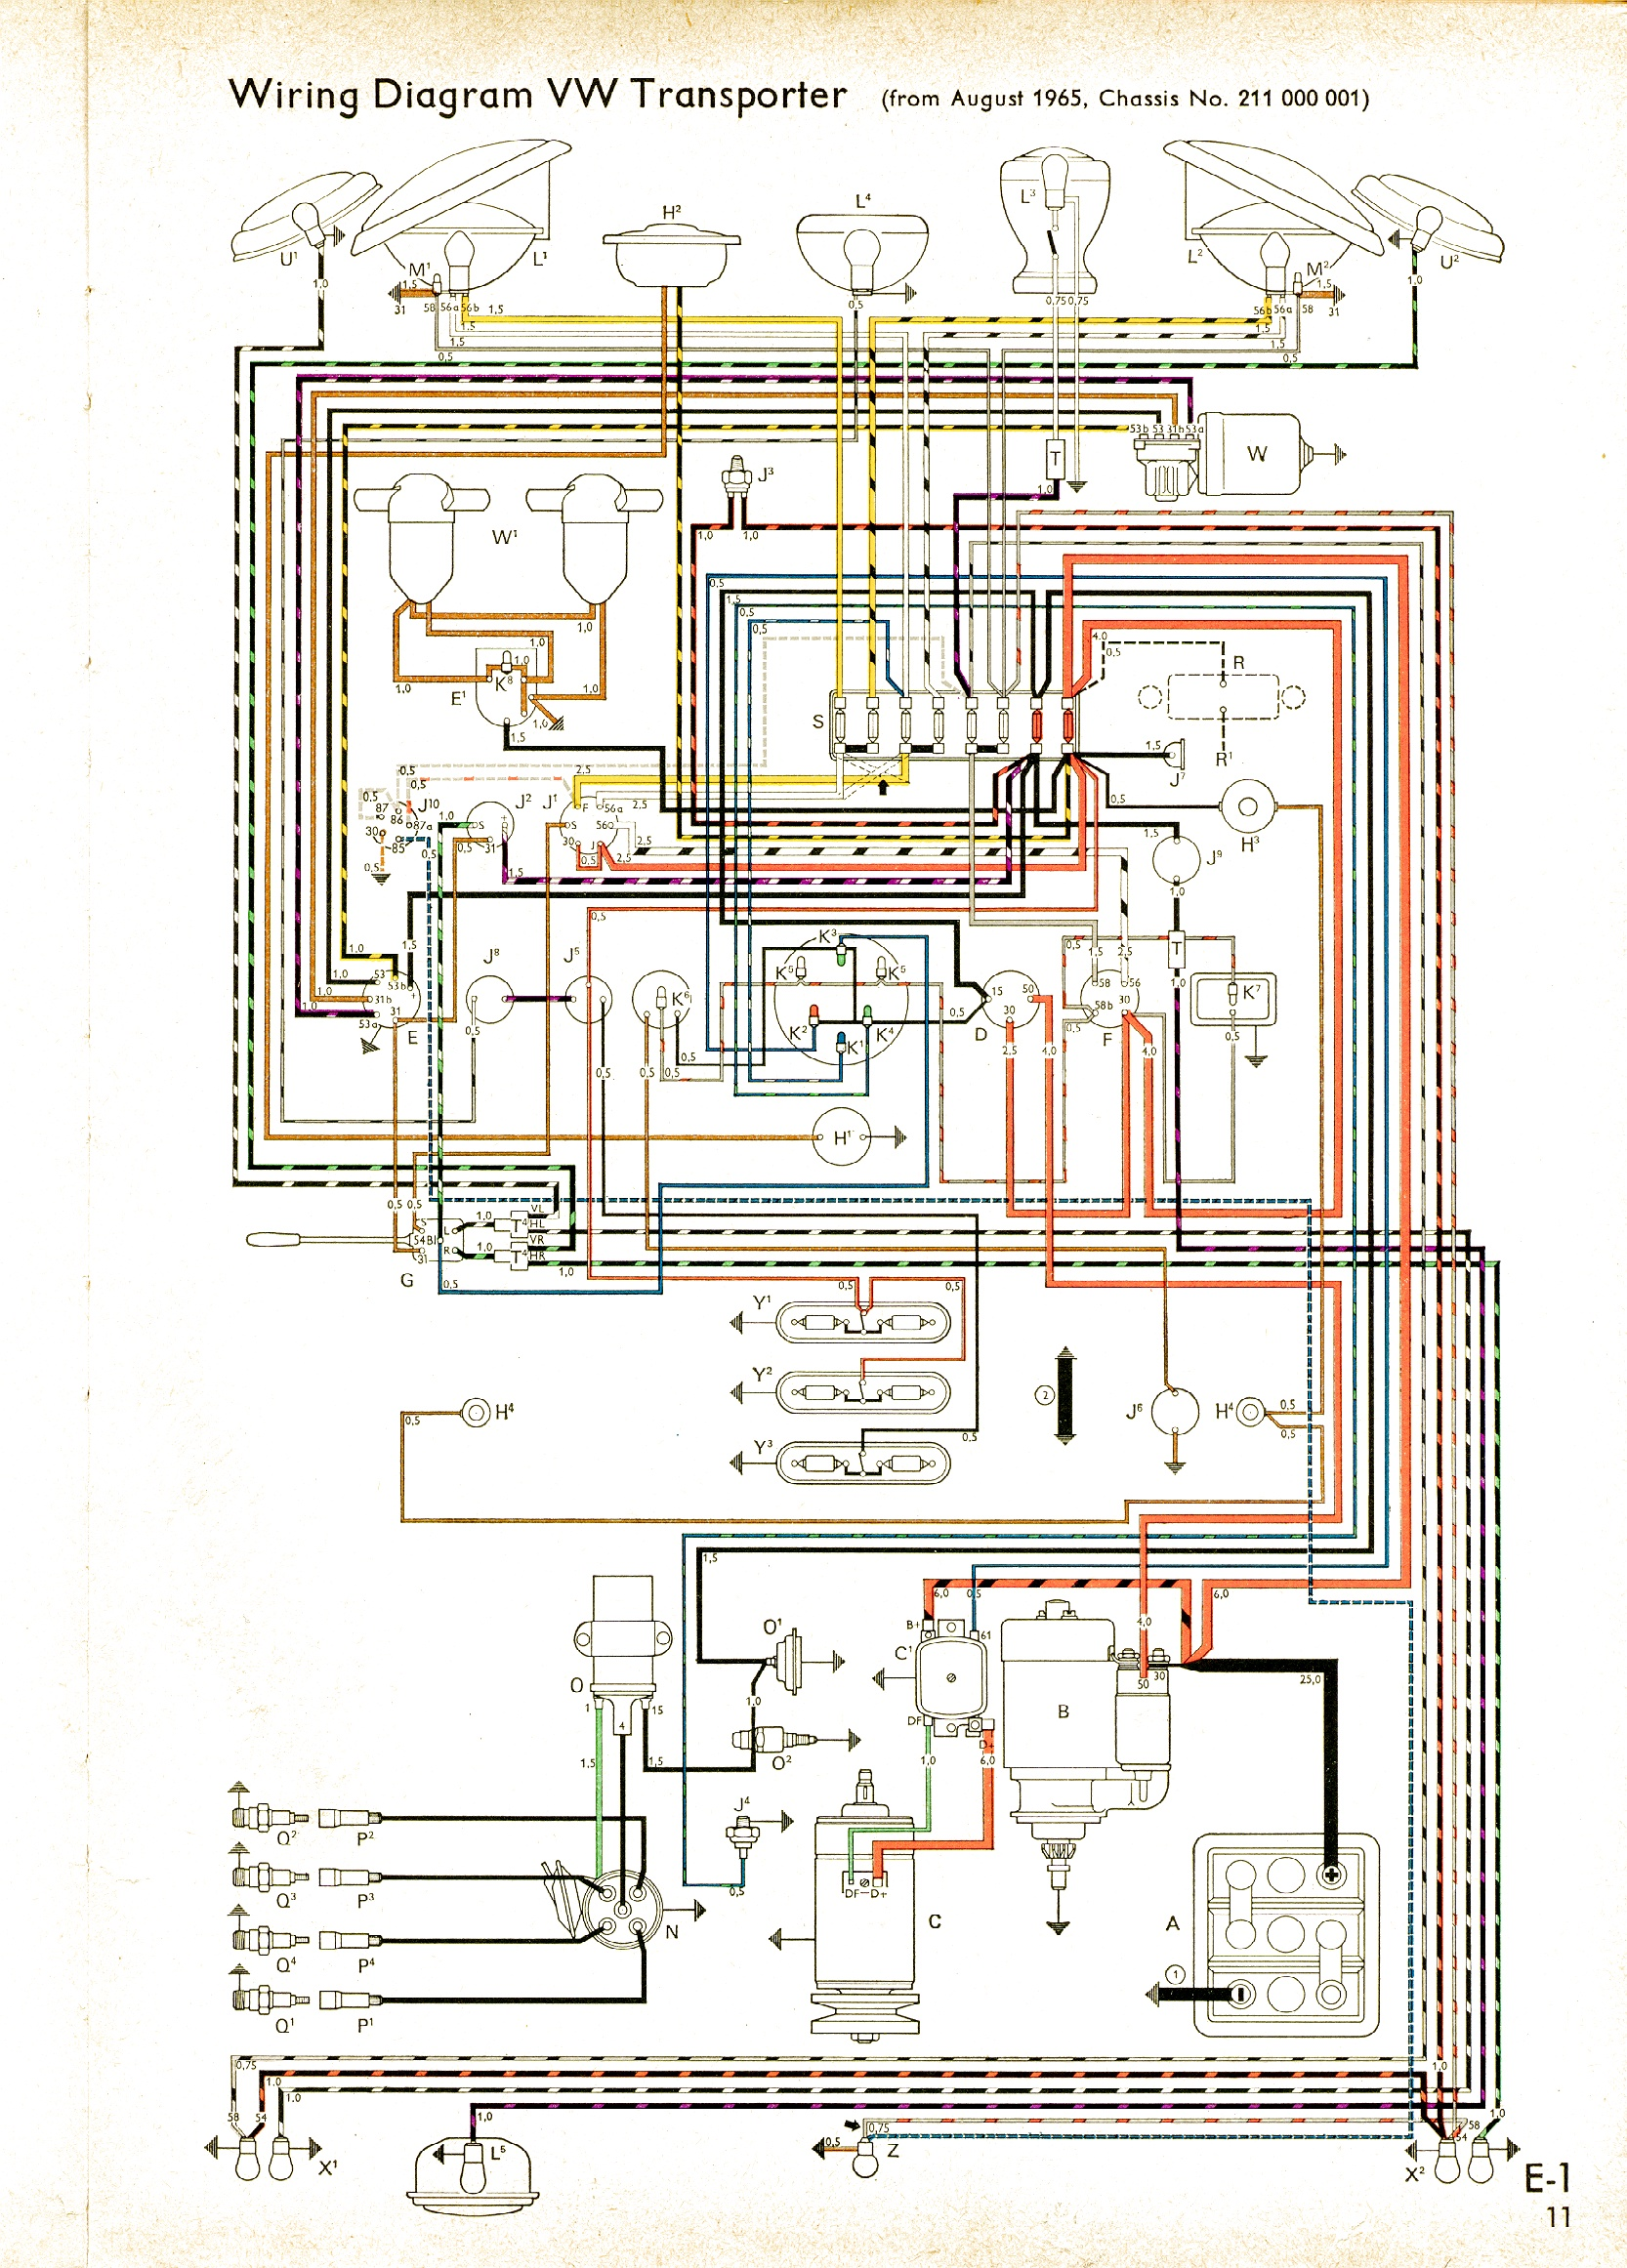 hight resolution of 2000 beetle wiring schematic wiring diagram paper 2001 vw beetle alternator wiring harness 2001 vw beetle wiring